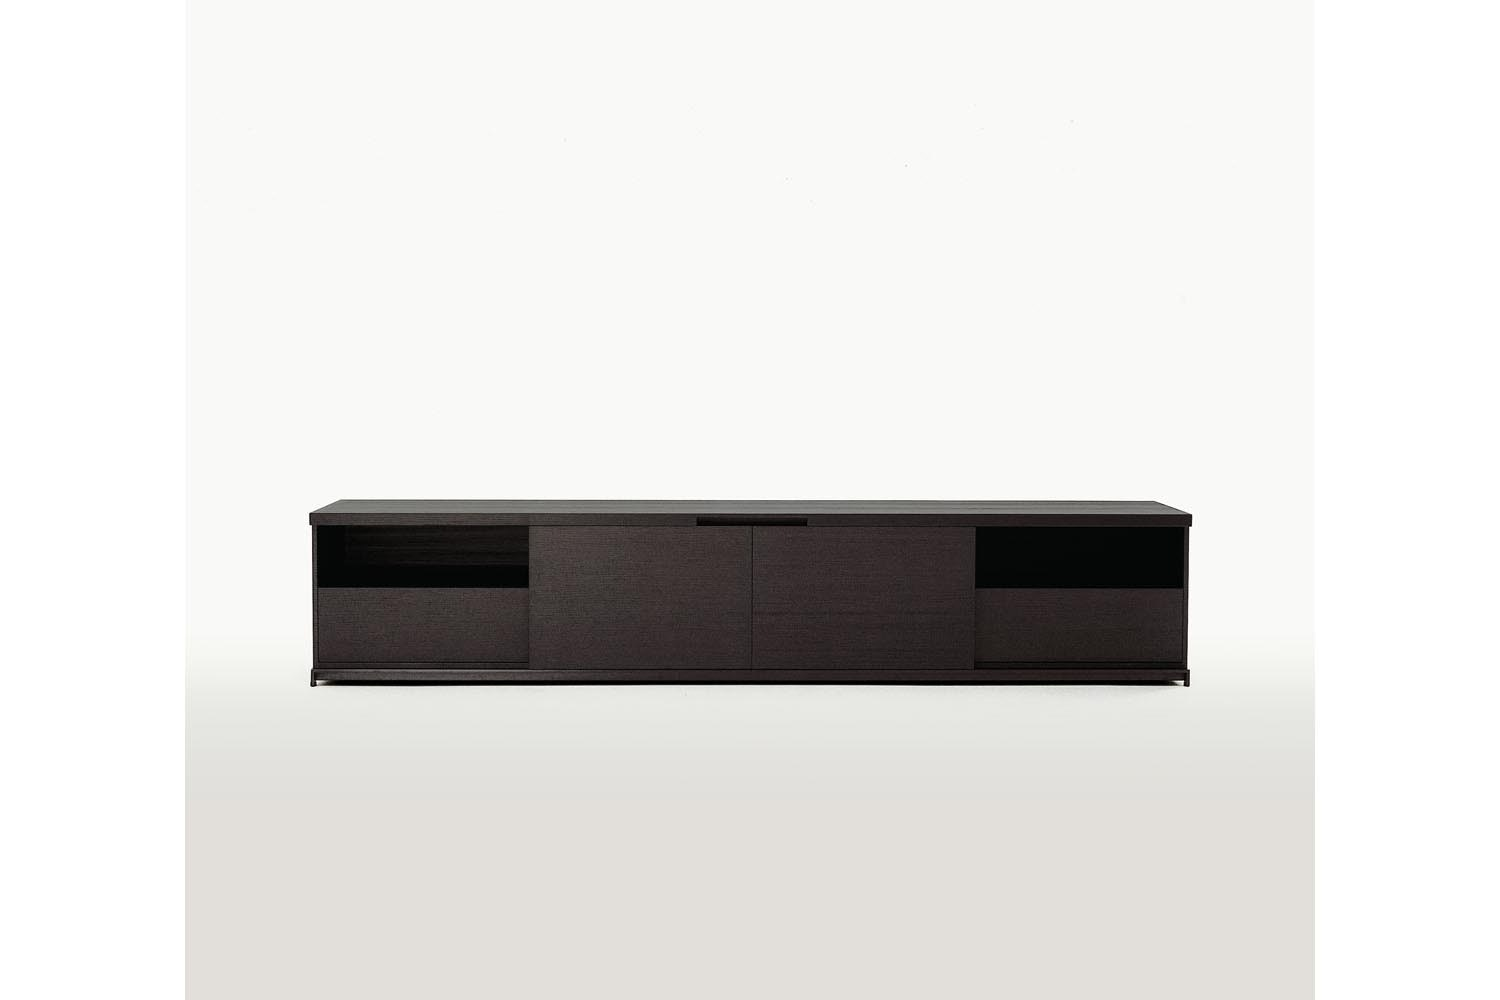 Mida Storage Unit by Antonio Citterio for Maxalto